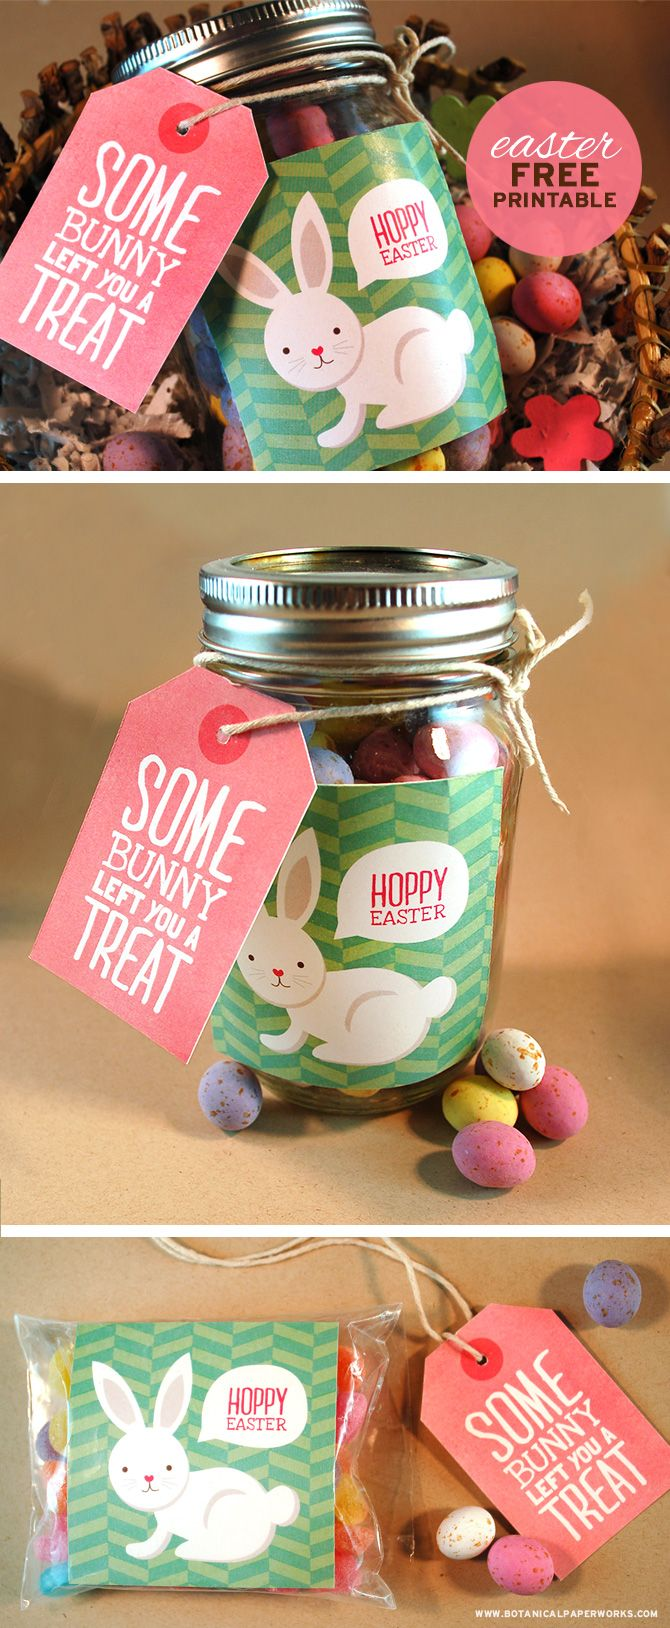 215 best easter gift ideas images on pinterest easter easter free printable easter treat tags labels negle Choice Image